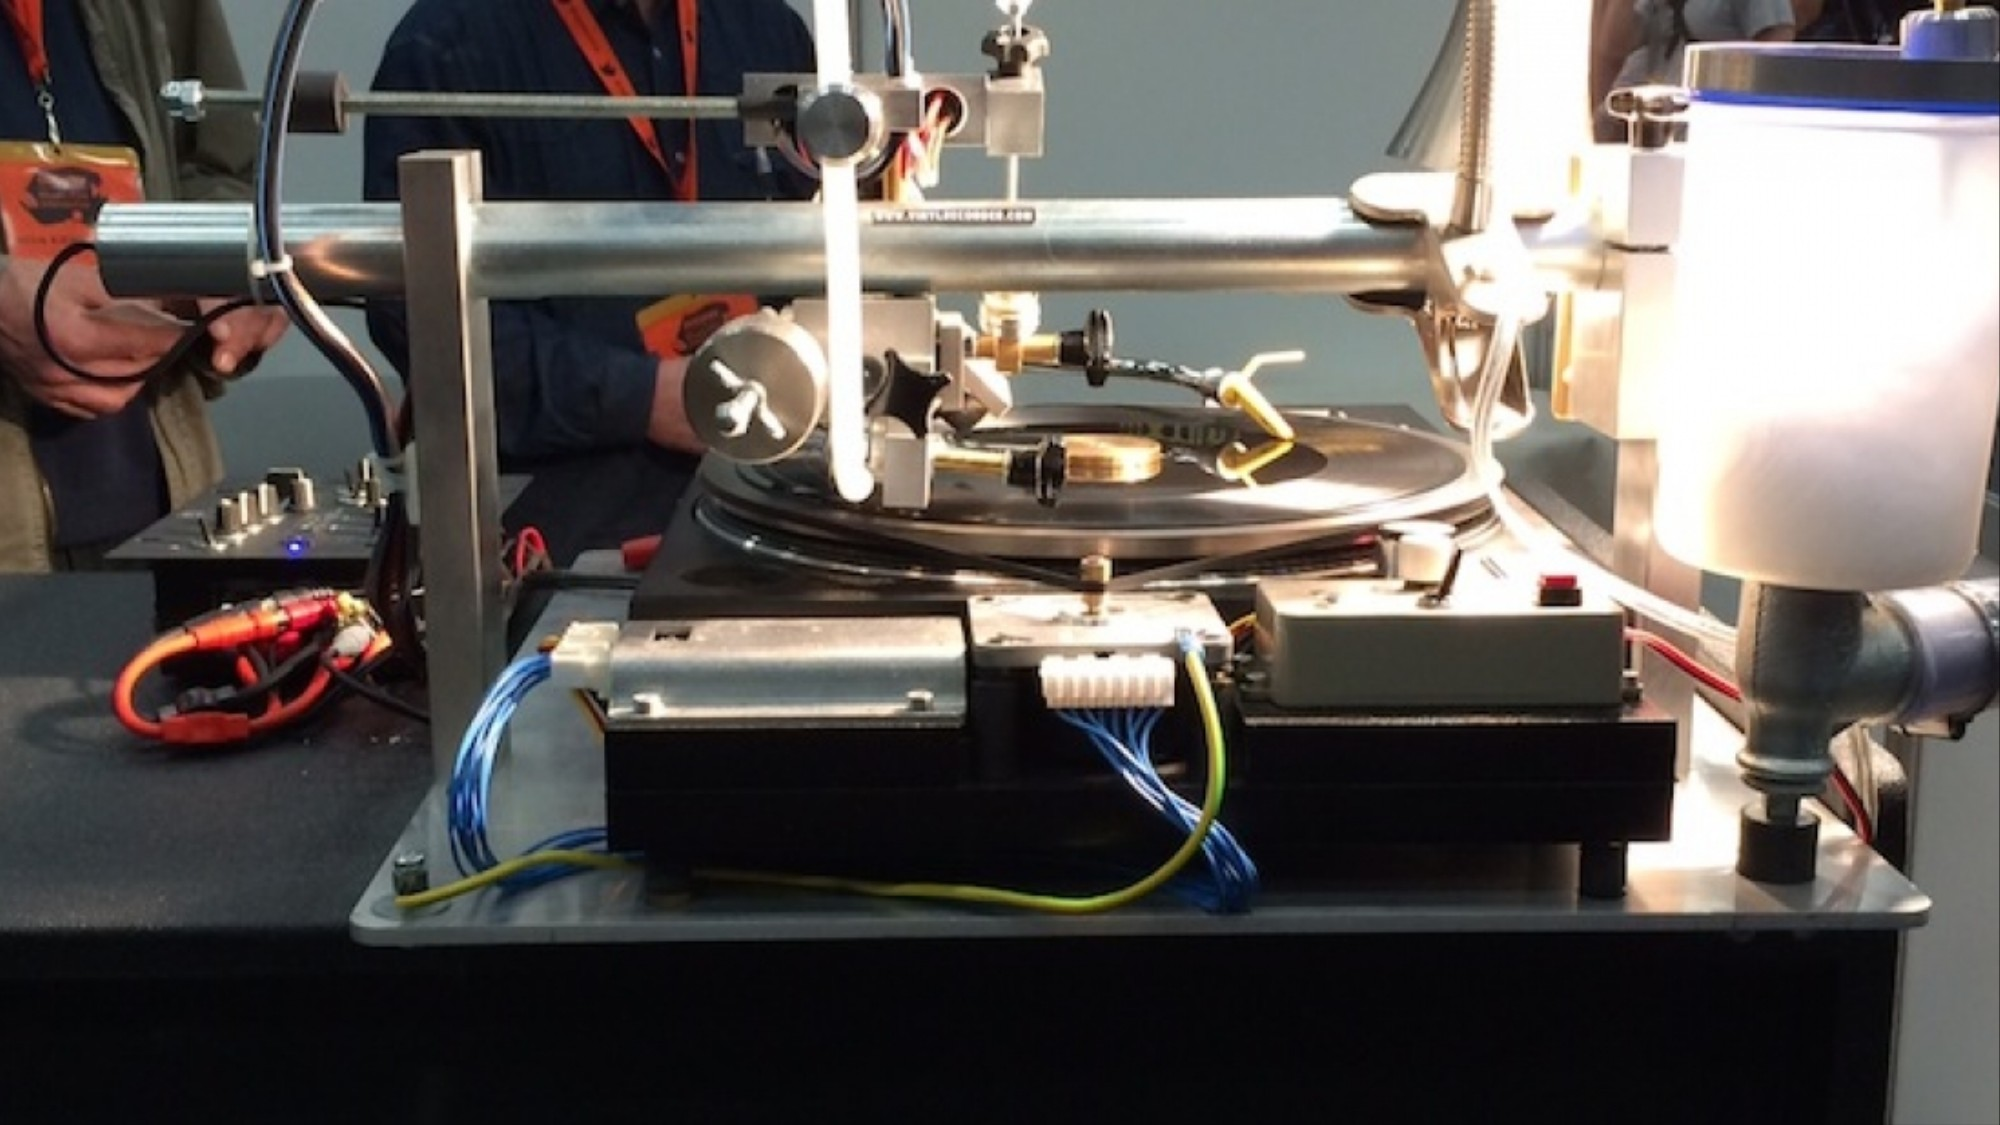 This Awesome DIY Machine Cuts Vinyl Records in Mere Minutes - VICE